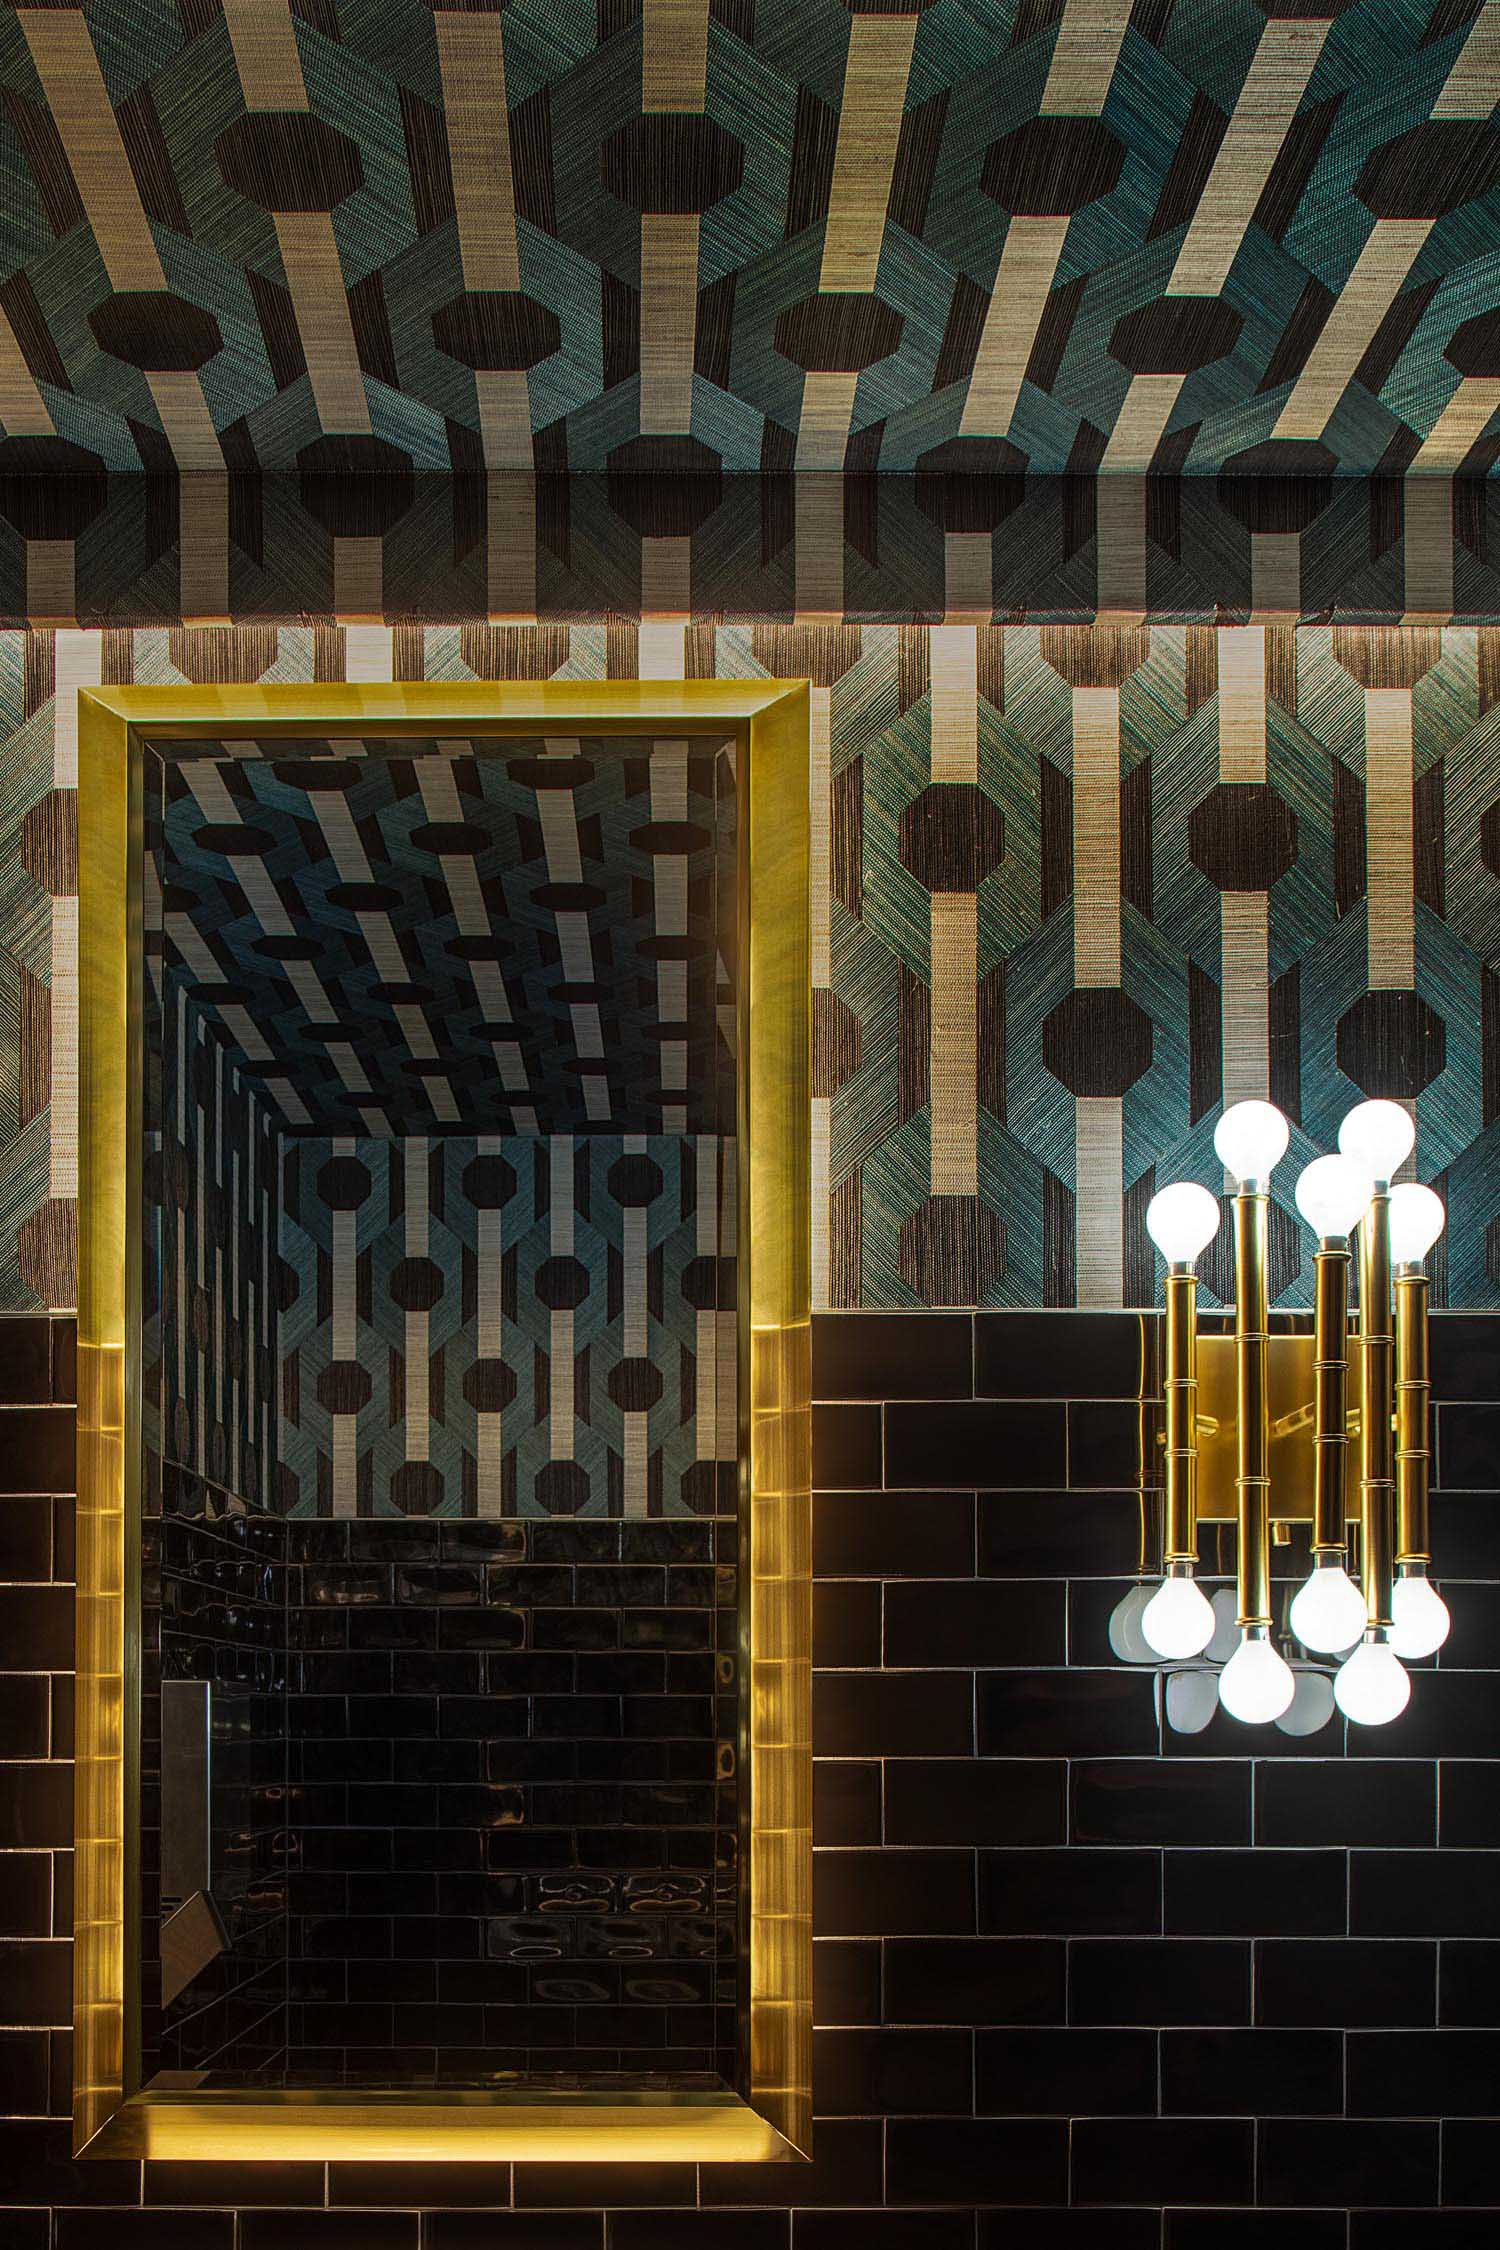 Patterned walls and black subway tiles in a restaurant bathroom.